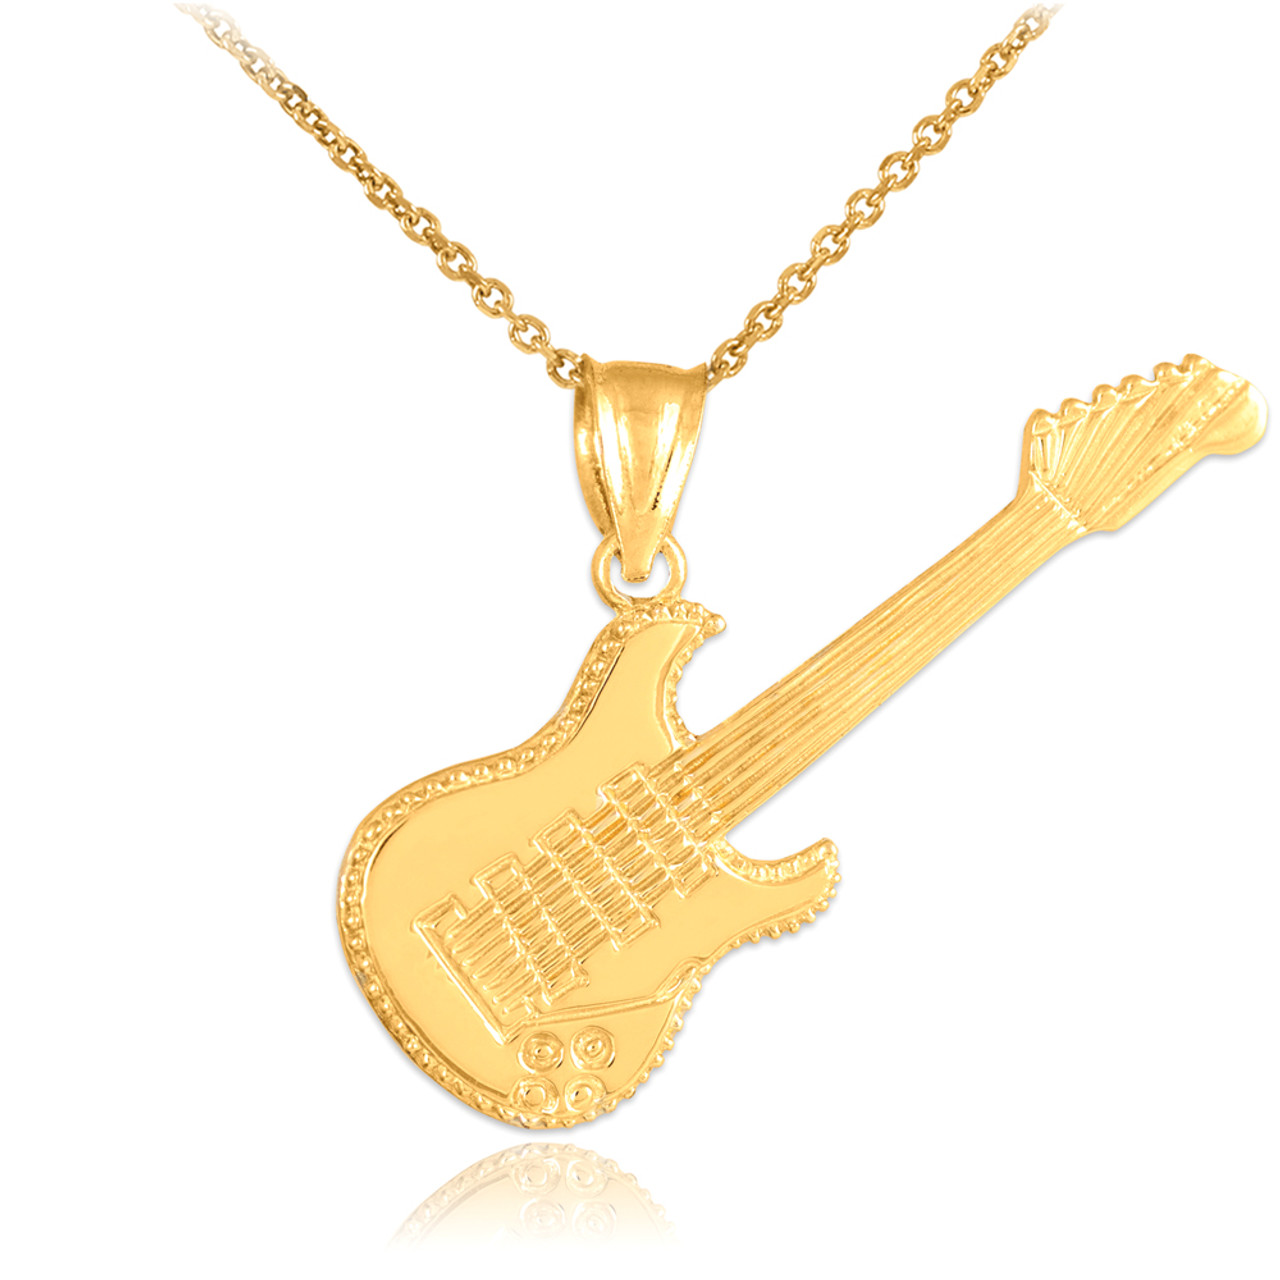 w chain com guitar shipping rose get new necklace gp free aliexpress on buy crystal sinkee wholesale and pendant choker fashion